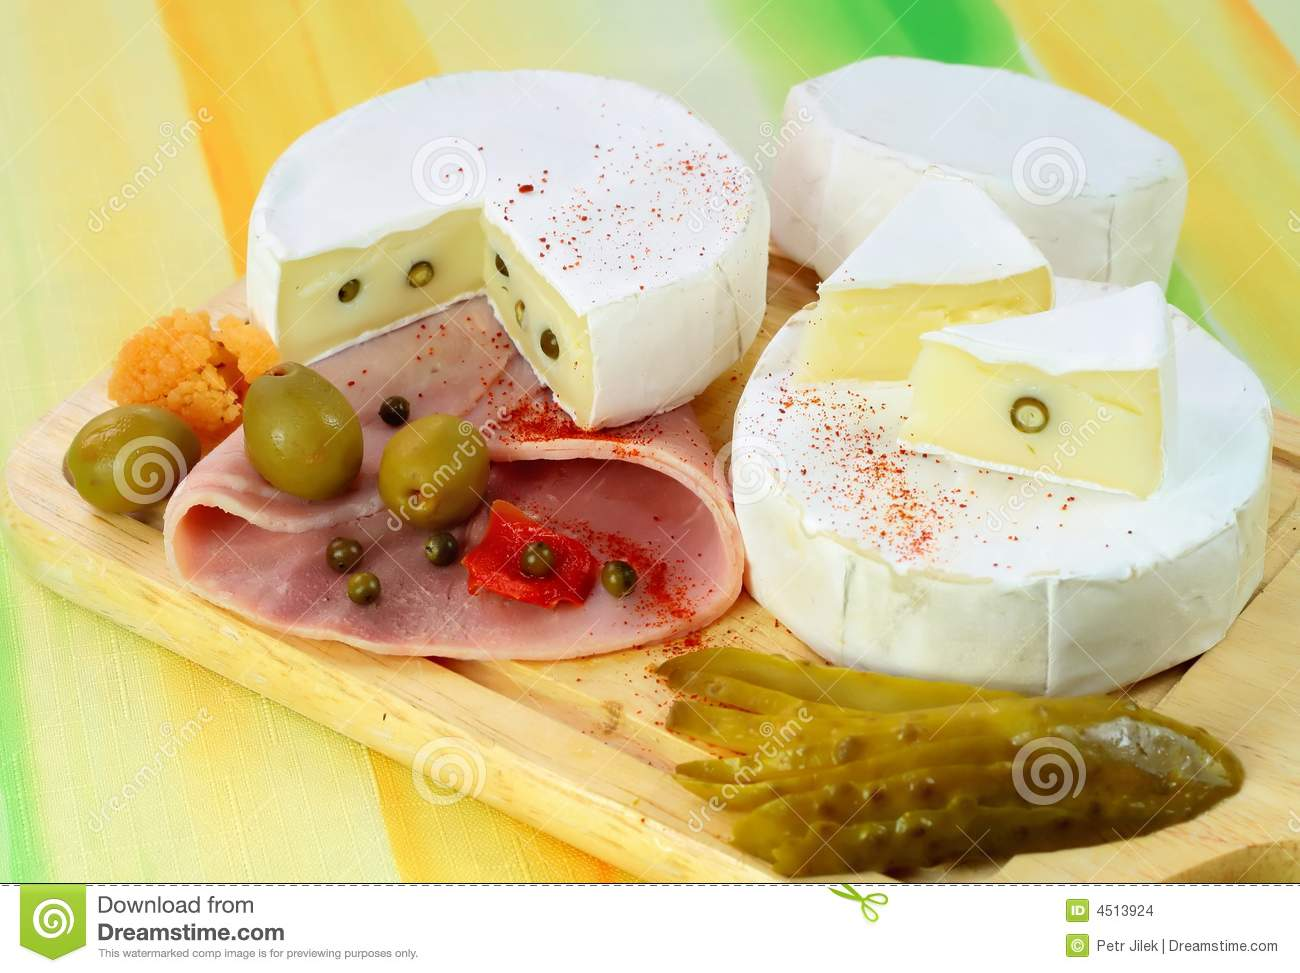 Two Loaf Of French Cheese Camembert Stock Images - Image: 4513924